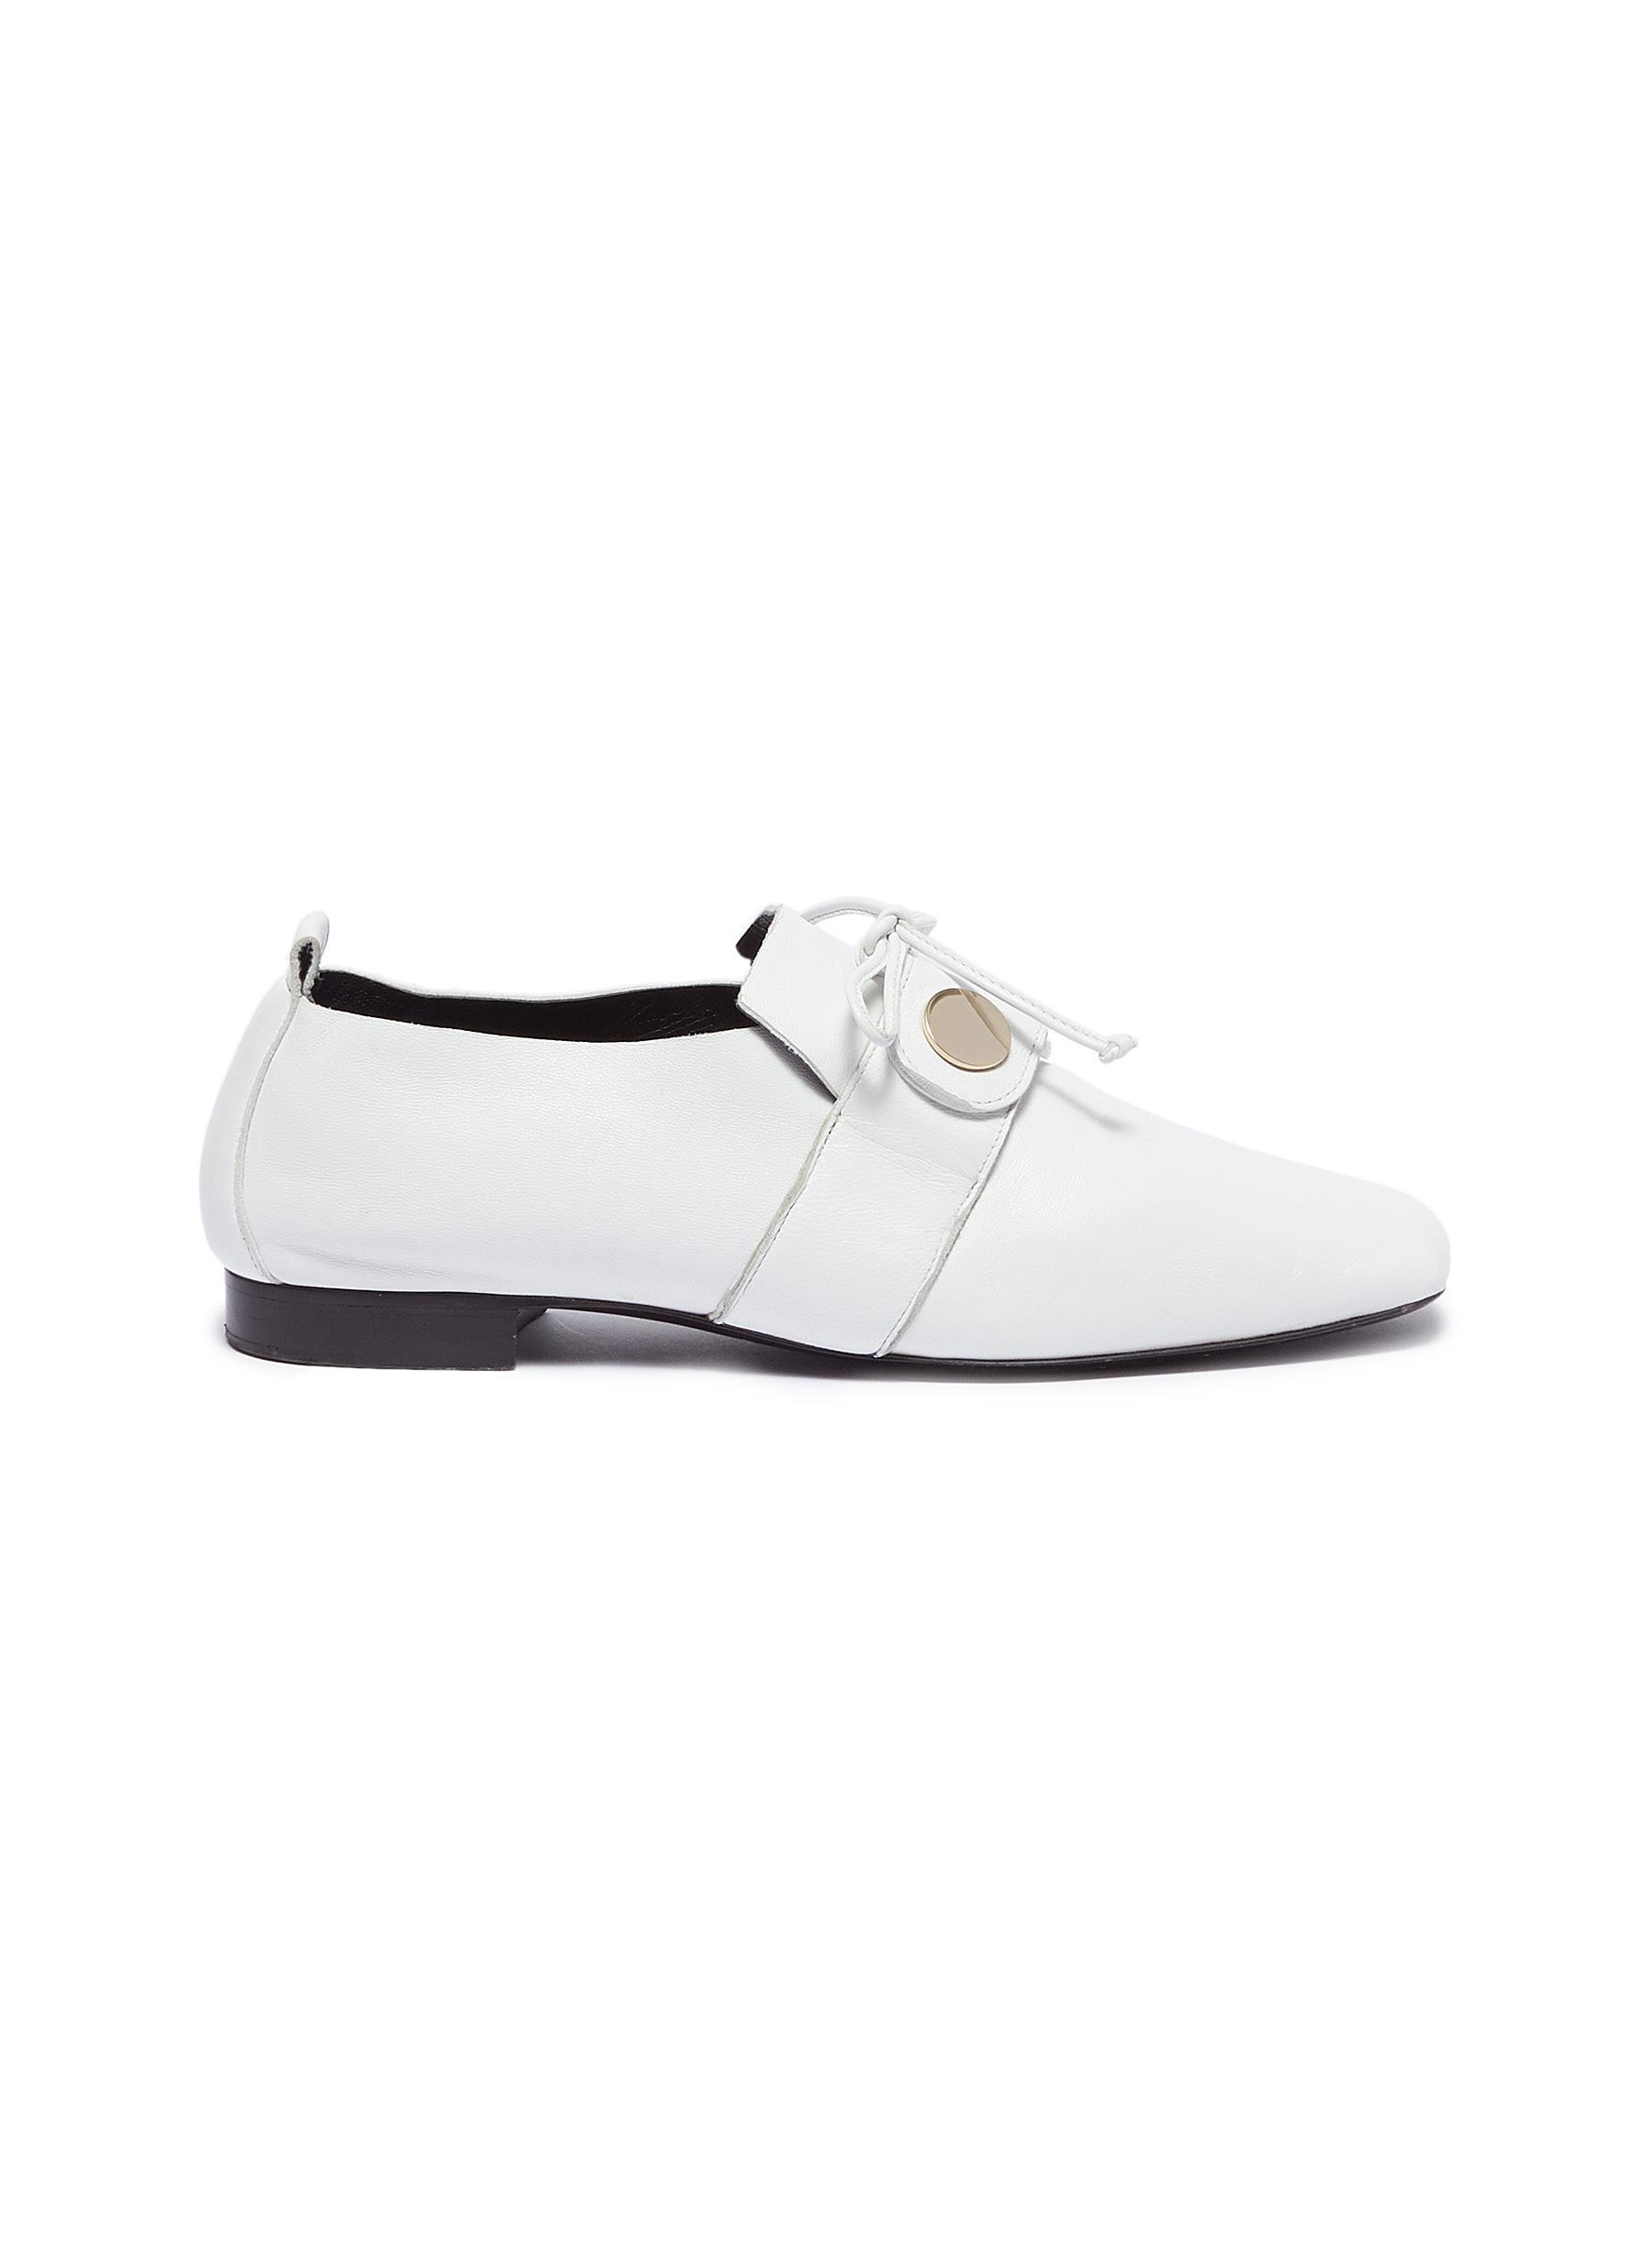 e70d72b8f45 Lyst - Pierre Hardy Penny Loafers in White